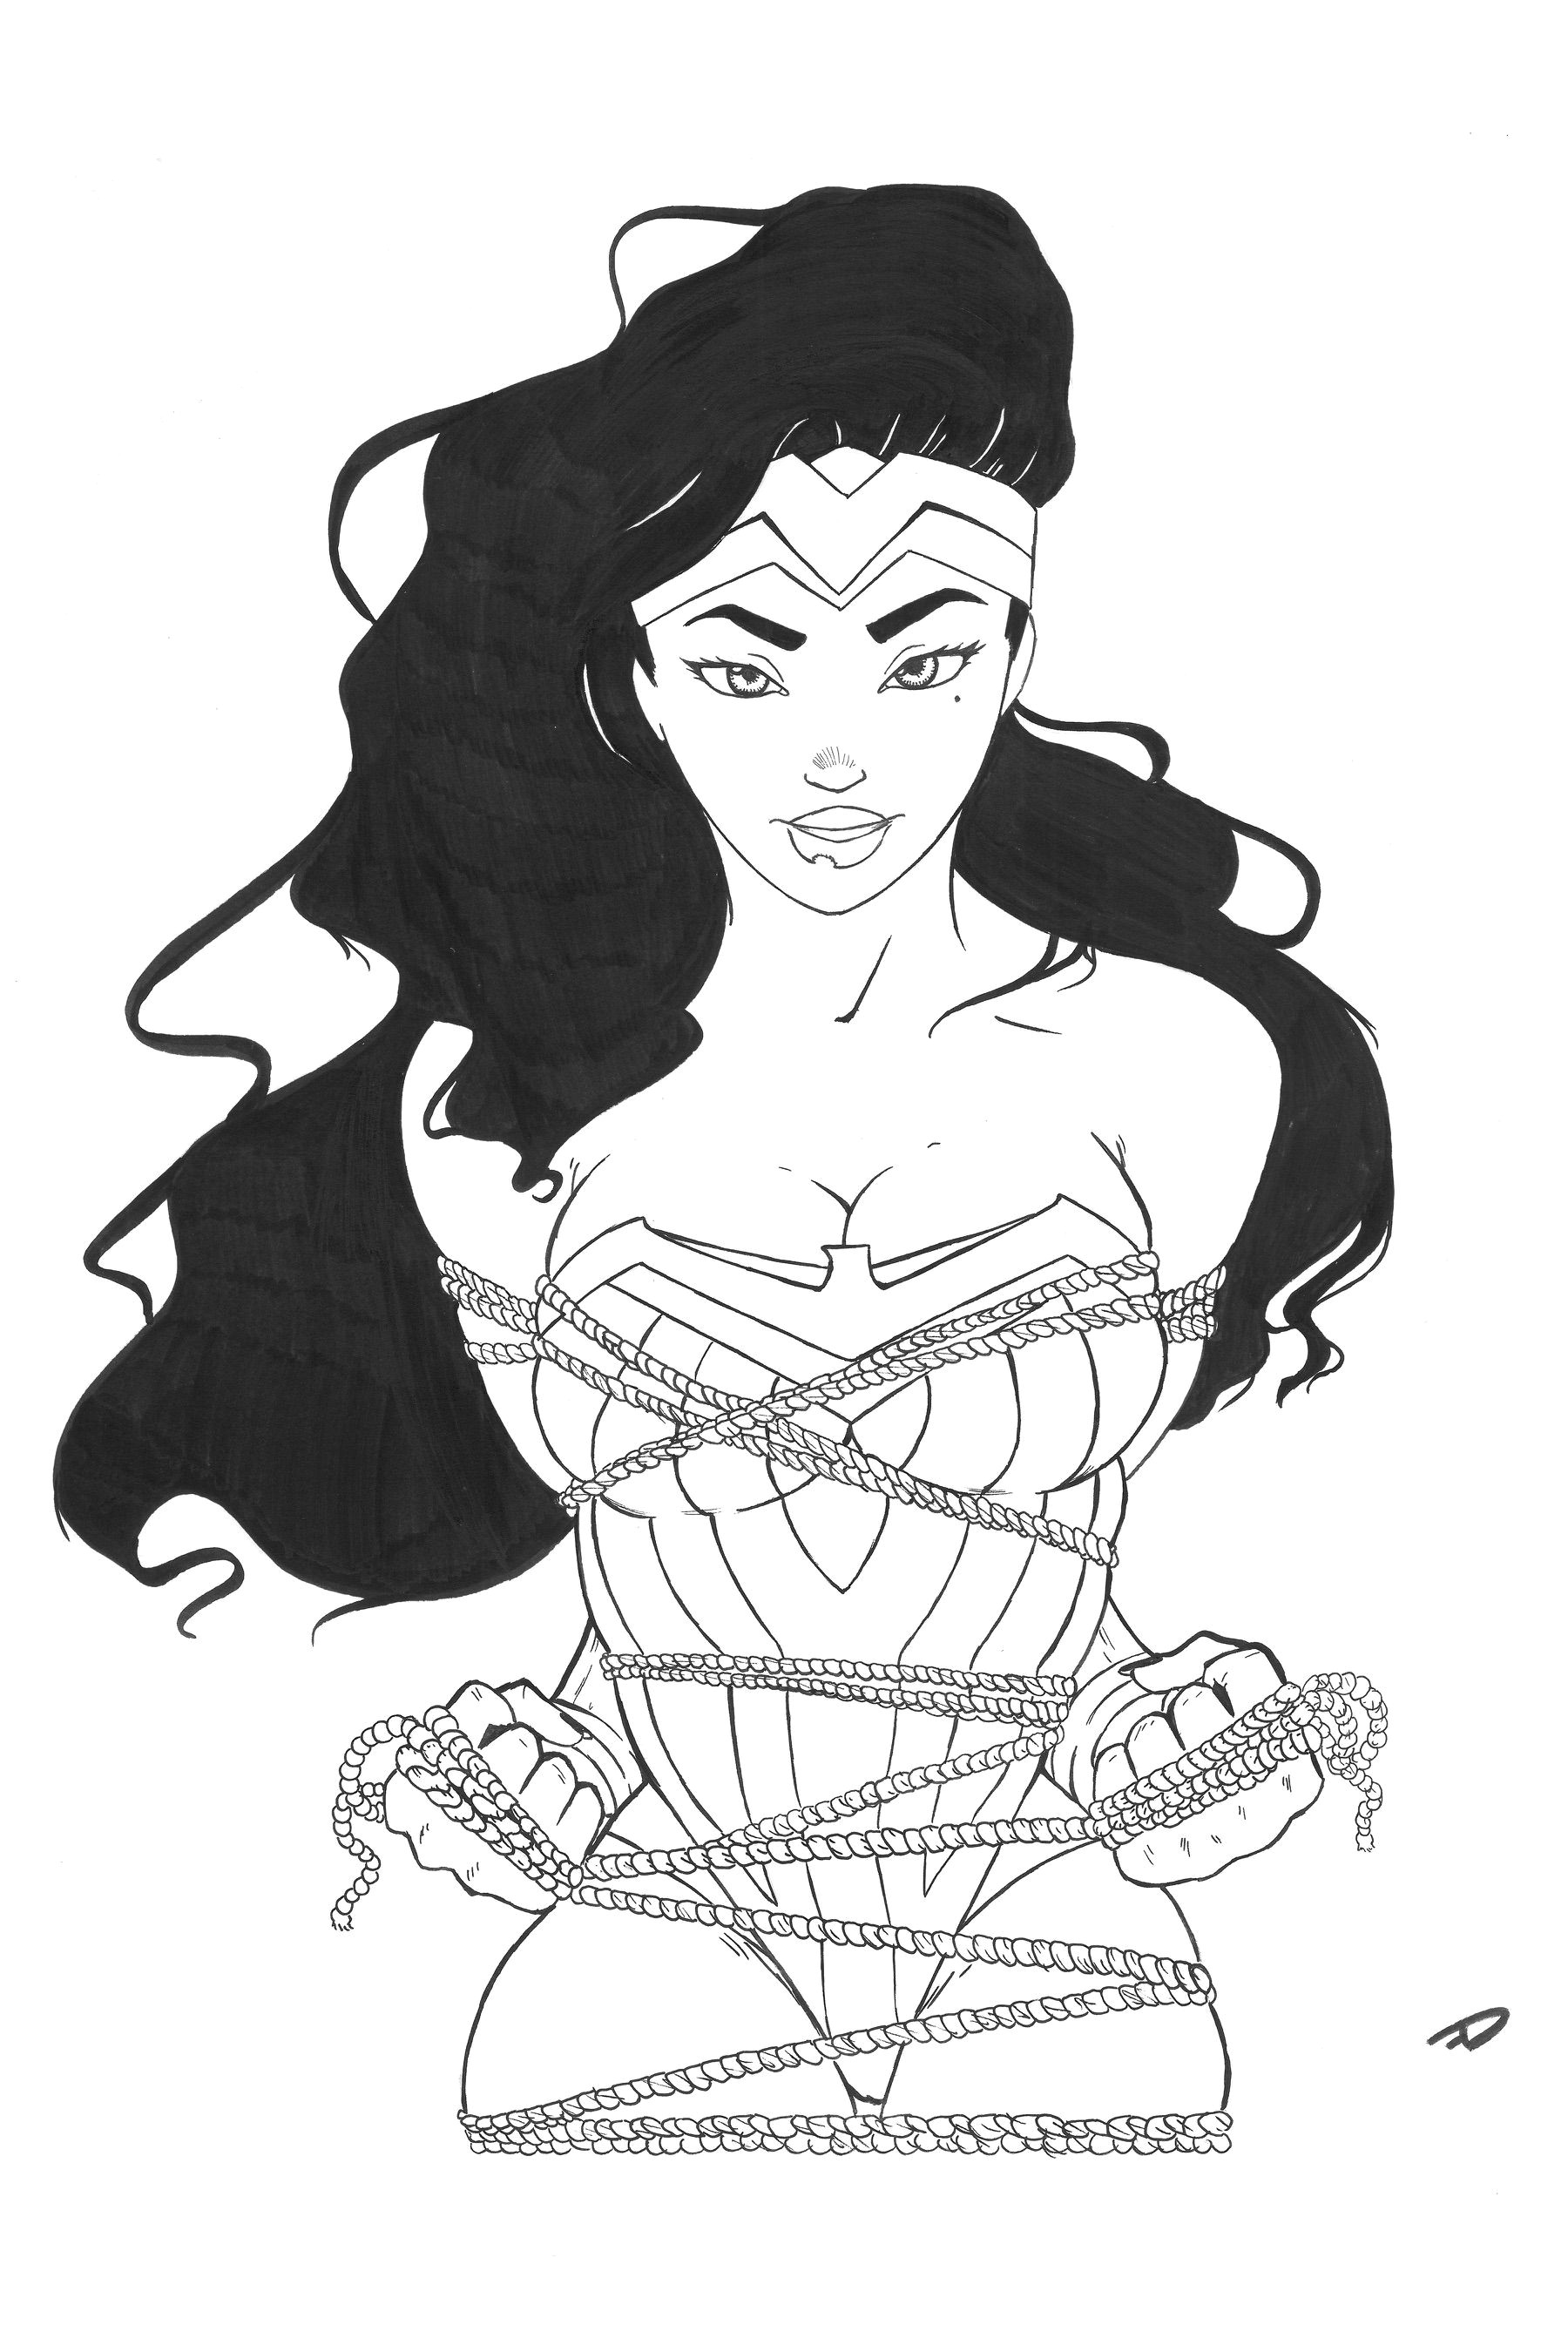 goddess of truth taking girl power to a new level 12x18 glossy cardstock poster print original sketch by don farina a k a the insomniartist